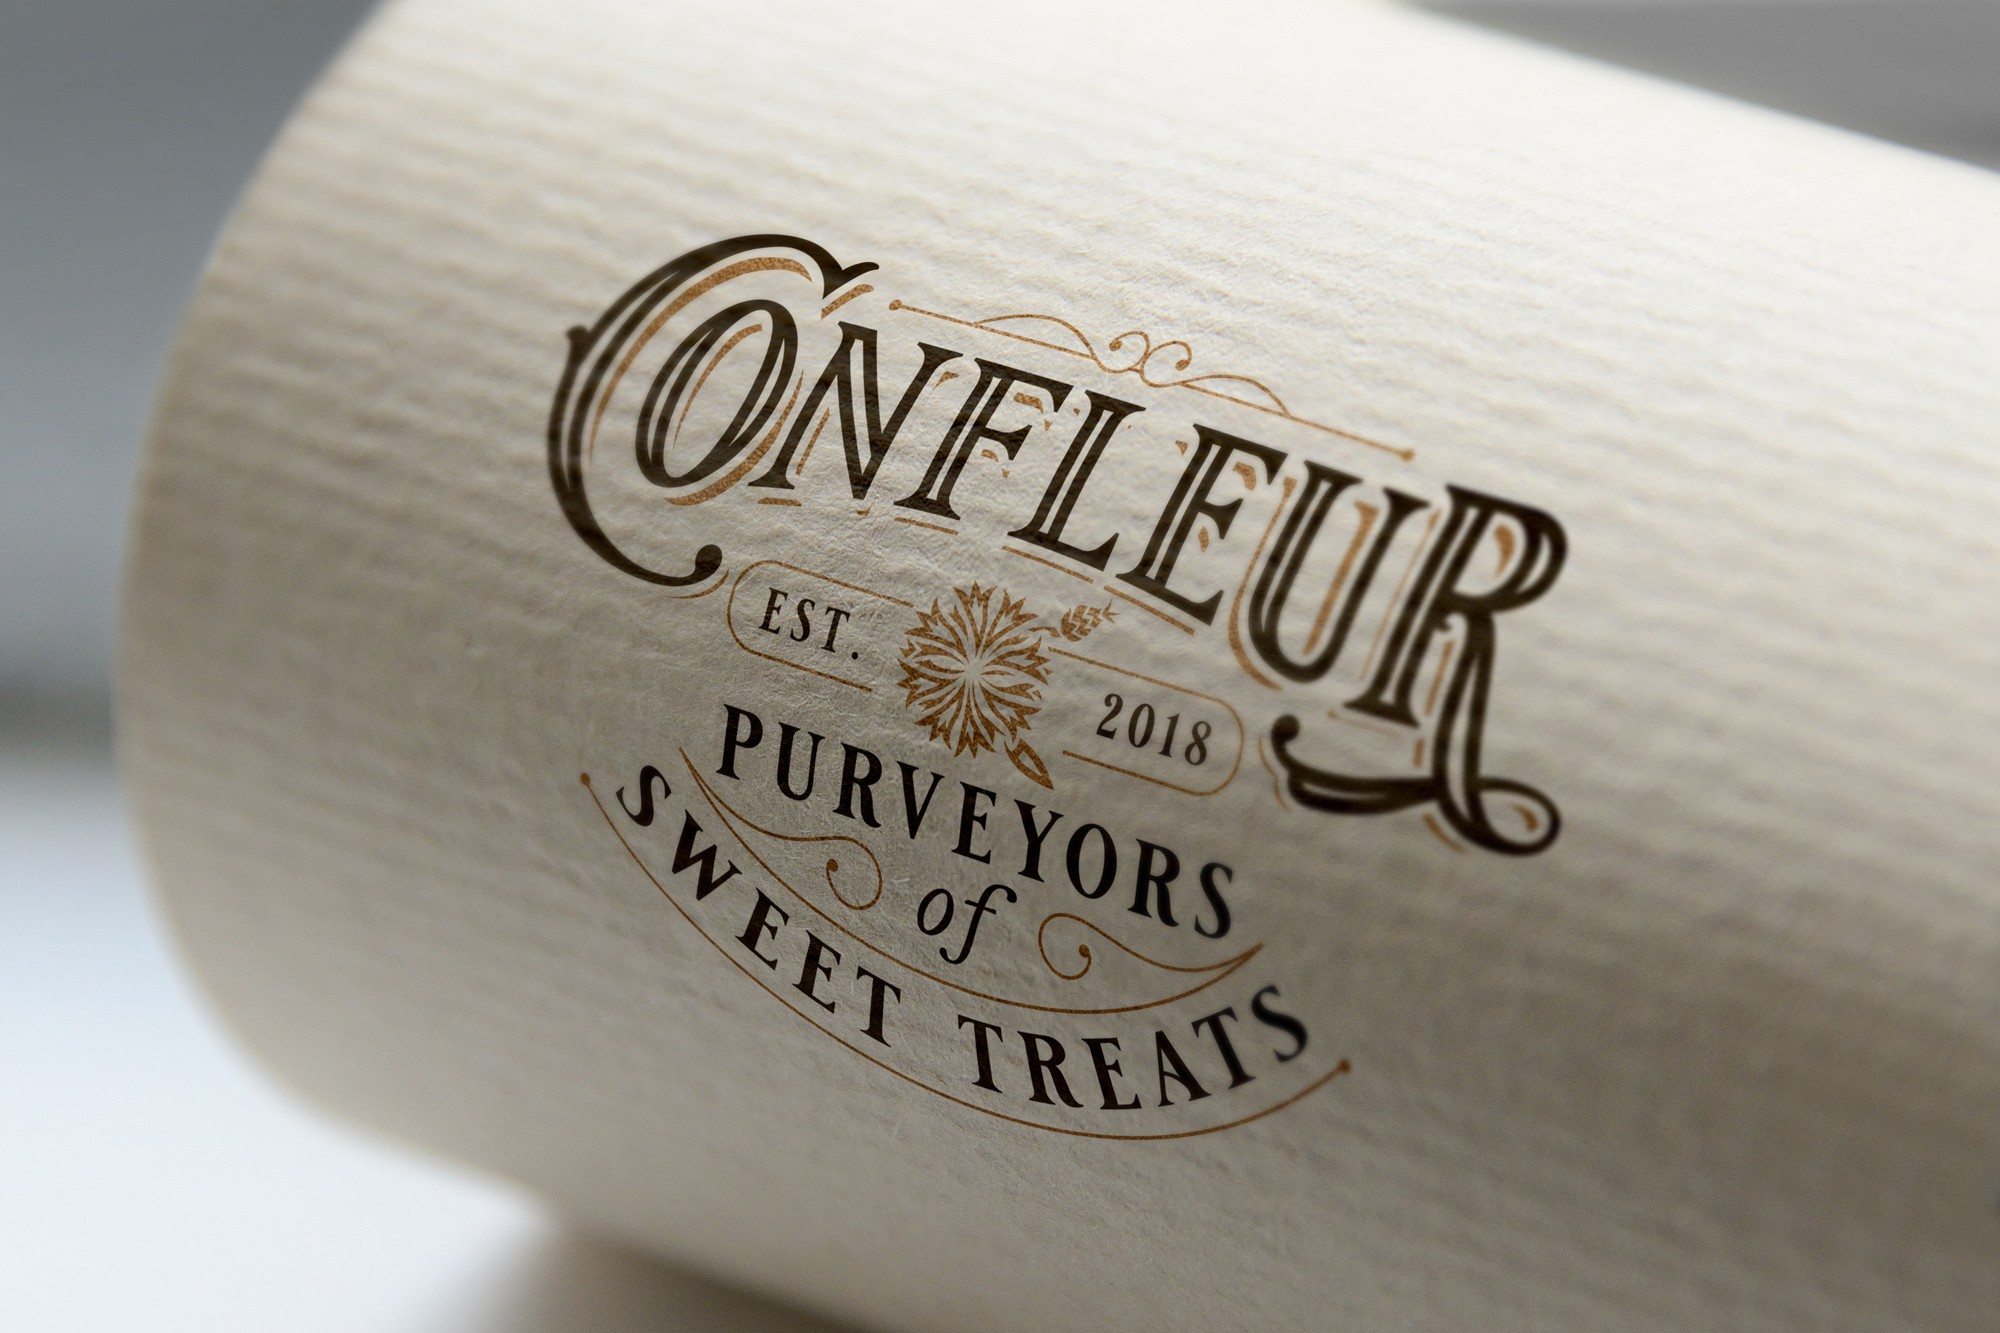 Create a vintage/elegant handwritten logo for an ice cream and pastry shop